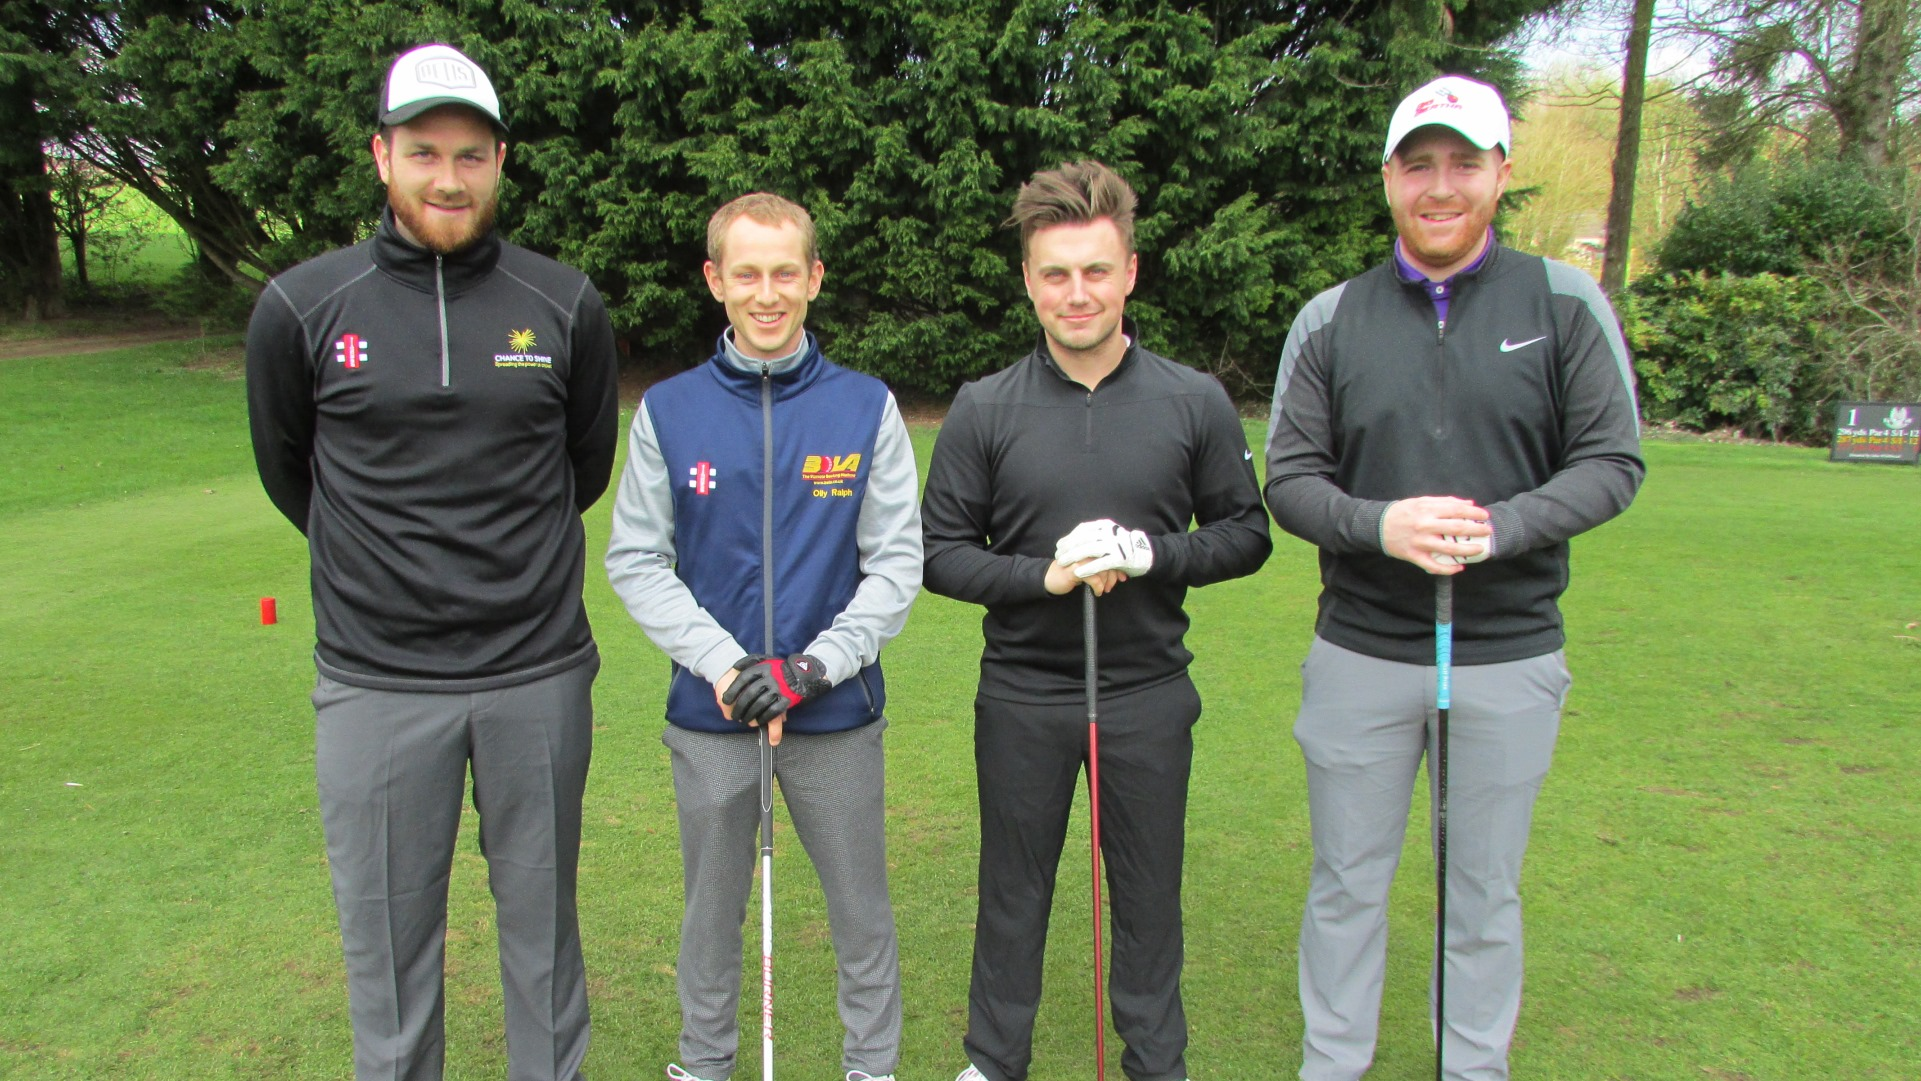 Golf day raises £4800 for schools' programme – with video